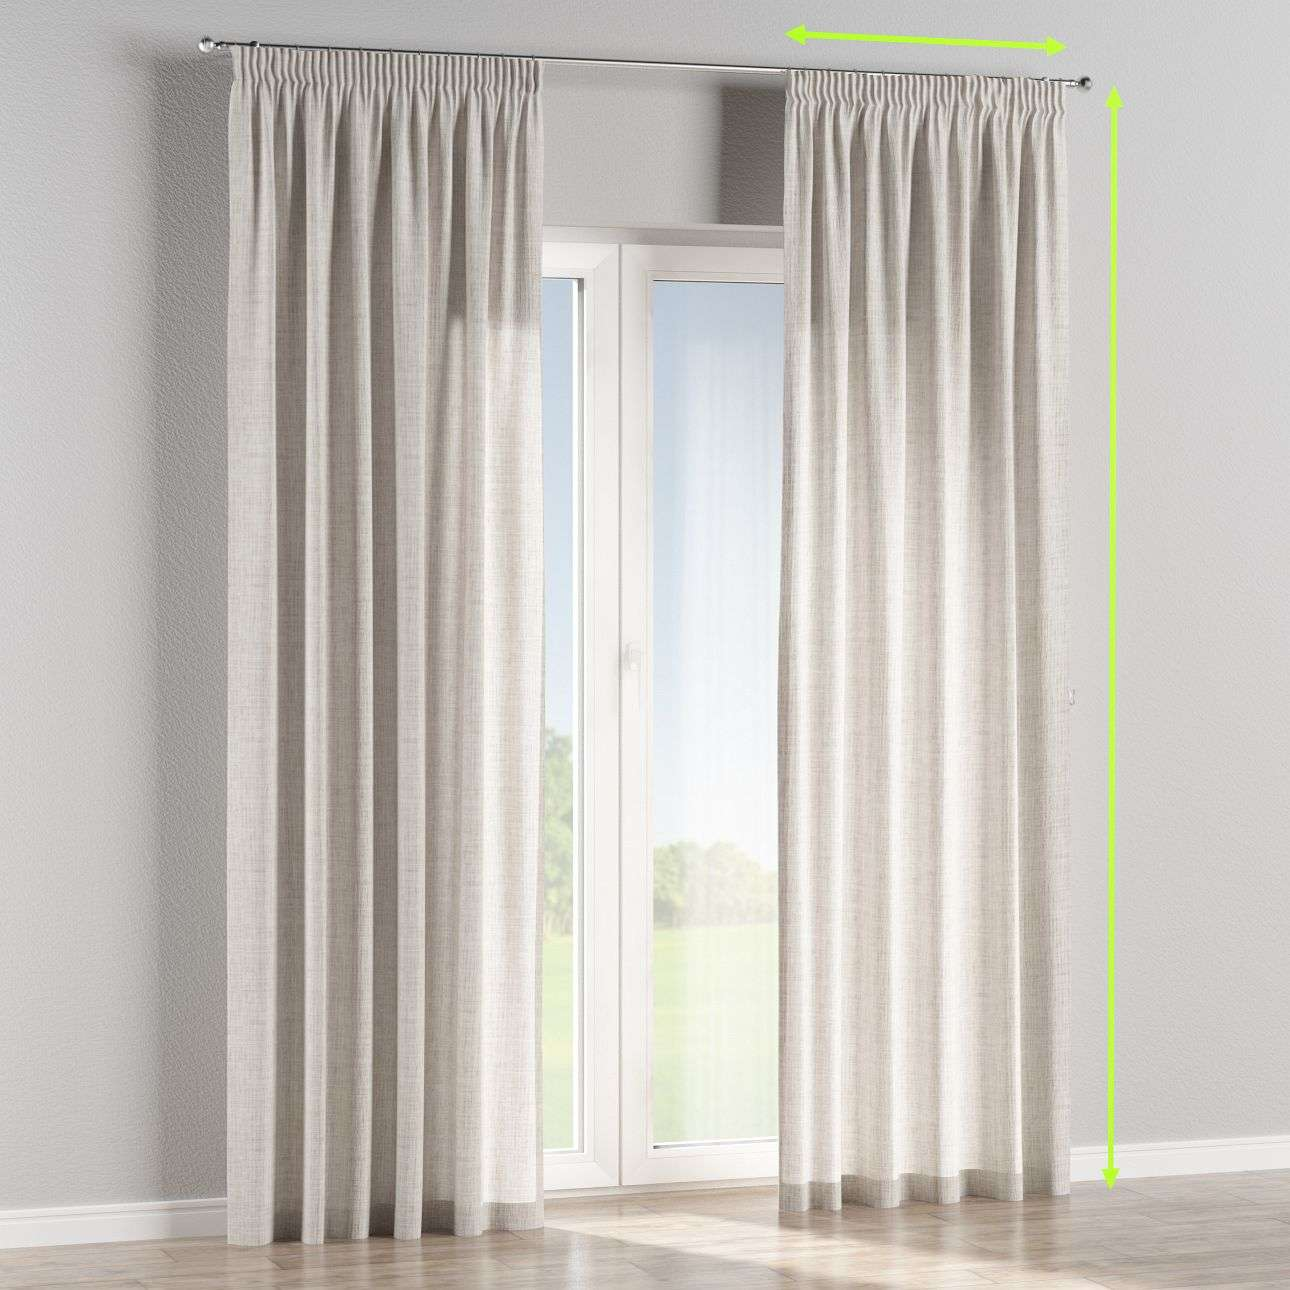 Pencil pleat lined curtains in collection Aquarelle, fabric: 140-75